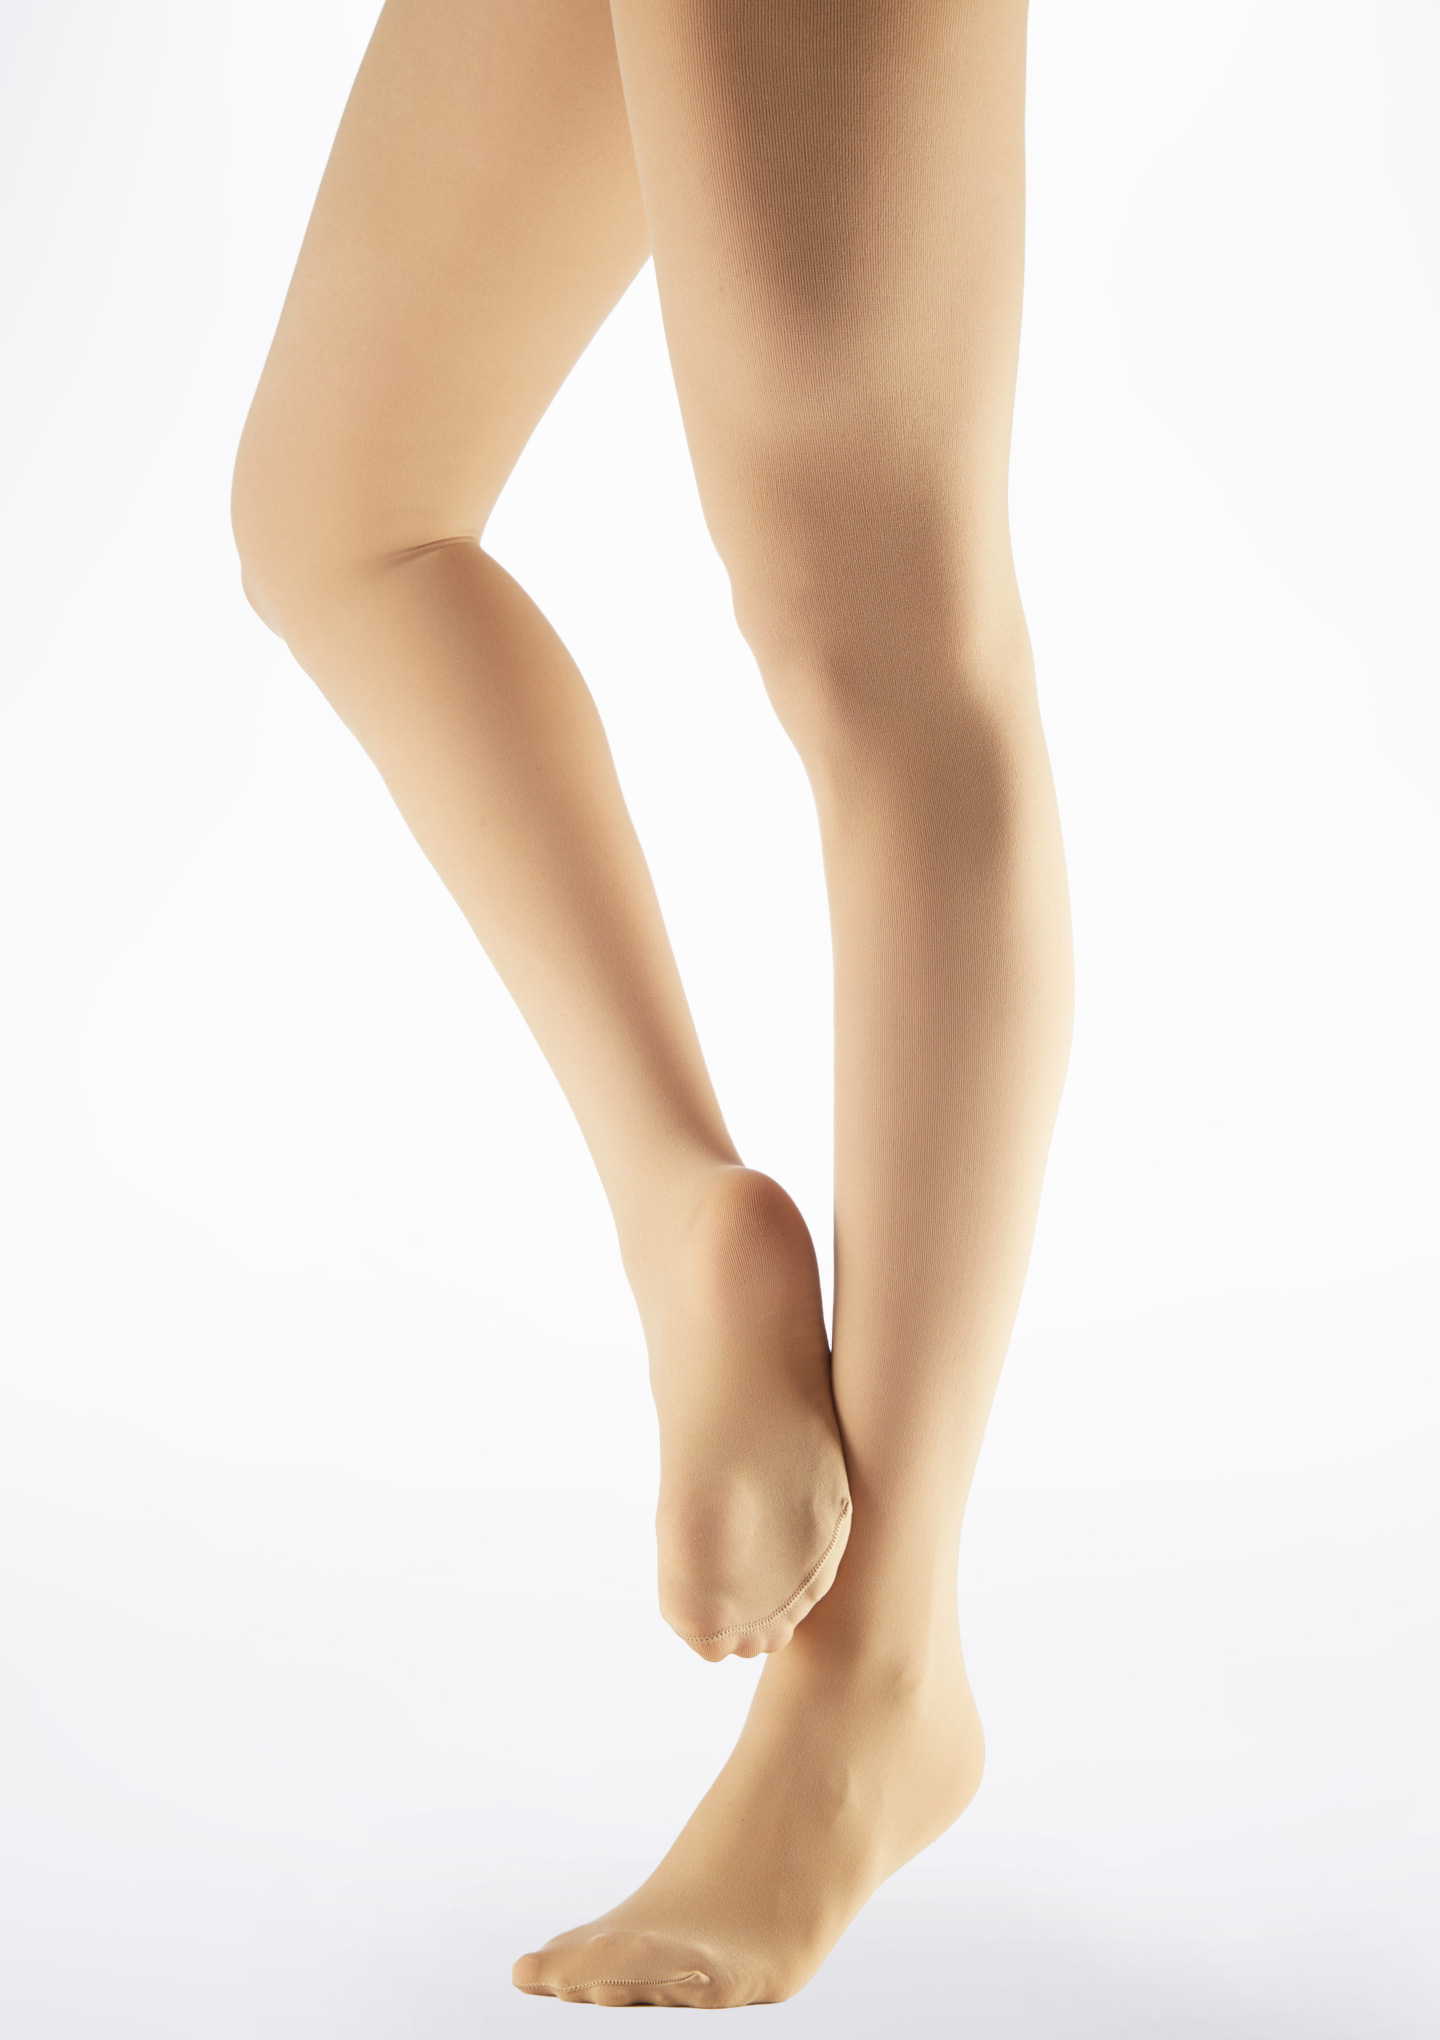 Move Dance Ballett-Strumpfhose Light Tan Braun hauptbild. [Braun]